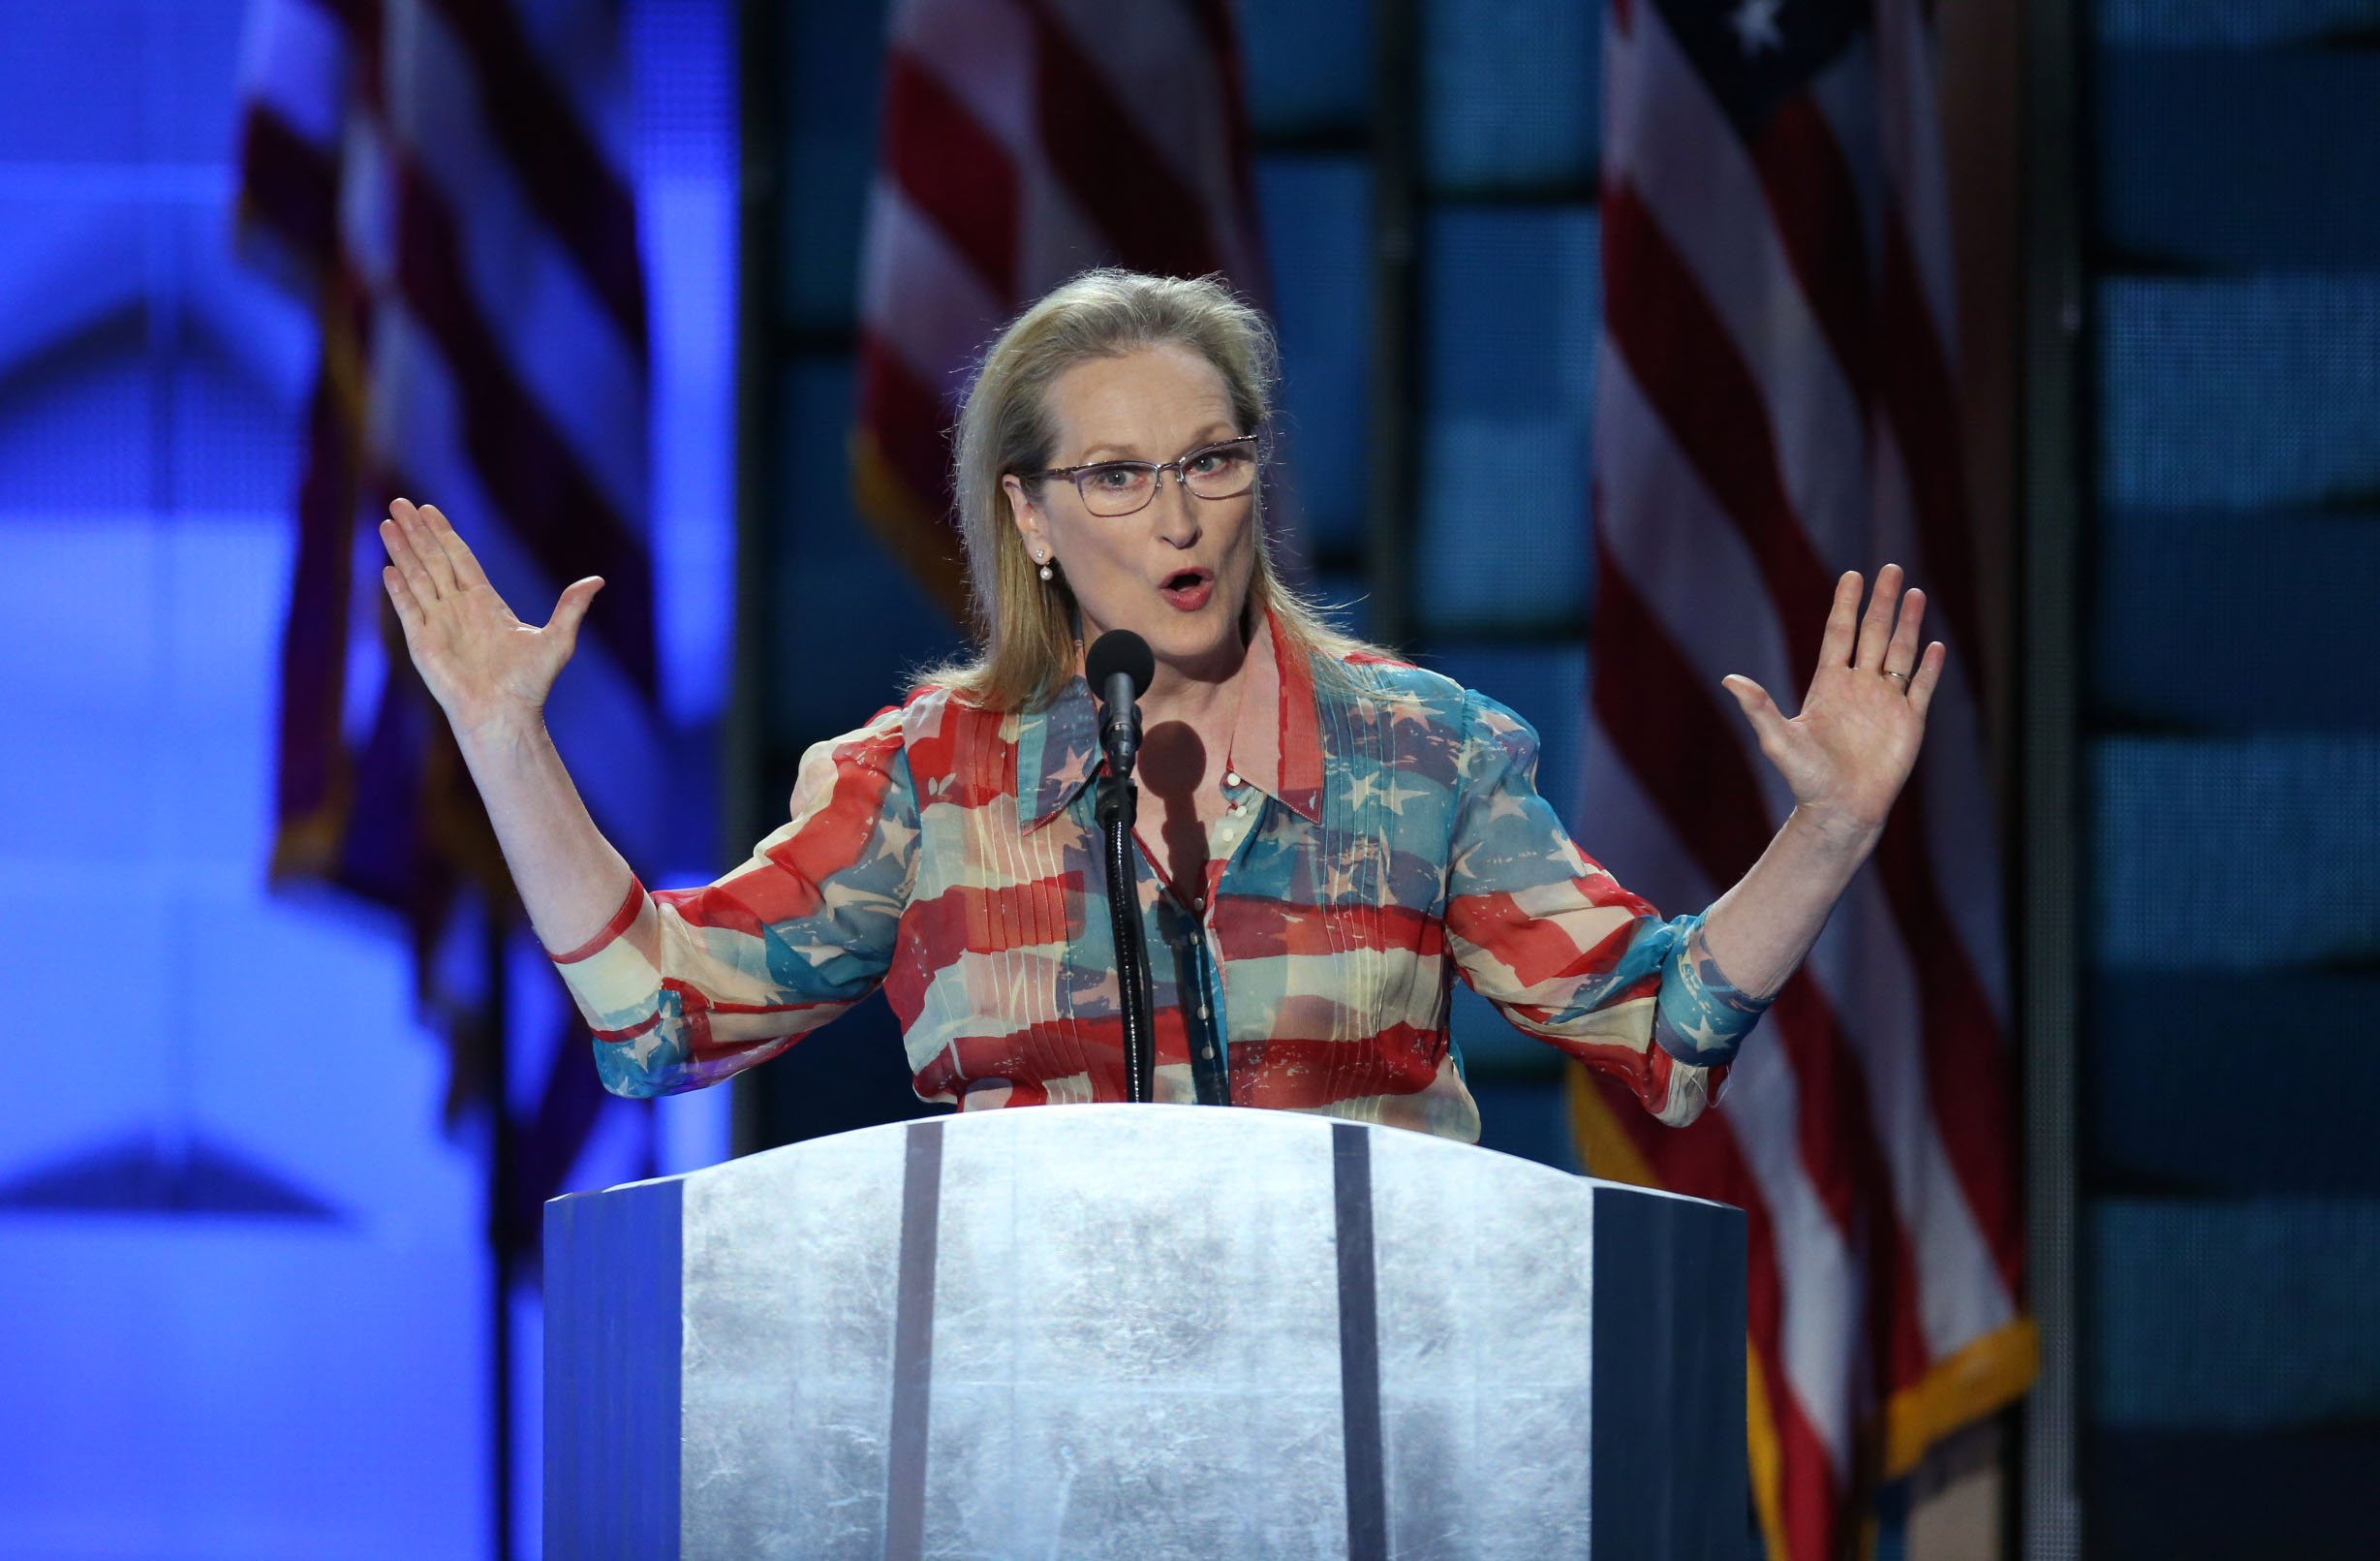 Actress Meryl Streep speaks during the Democratic National Convention (DNC) in Philadelphia, Penn., on July 26, 2016.